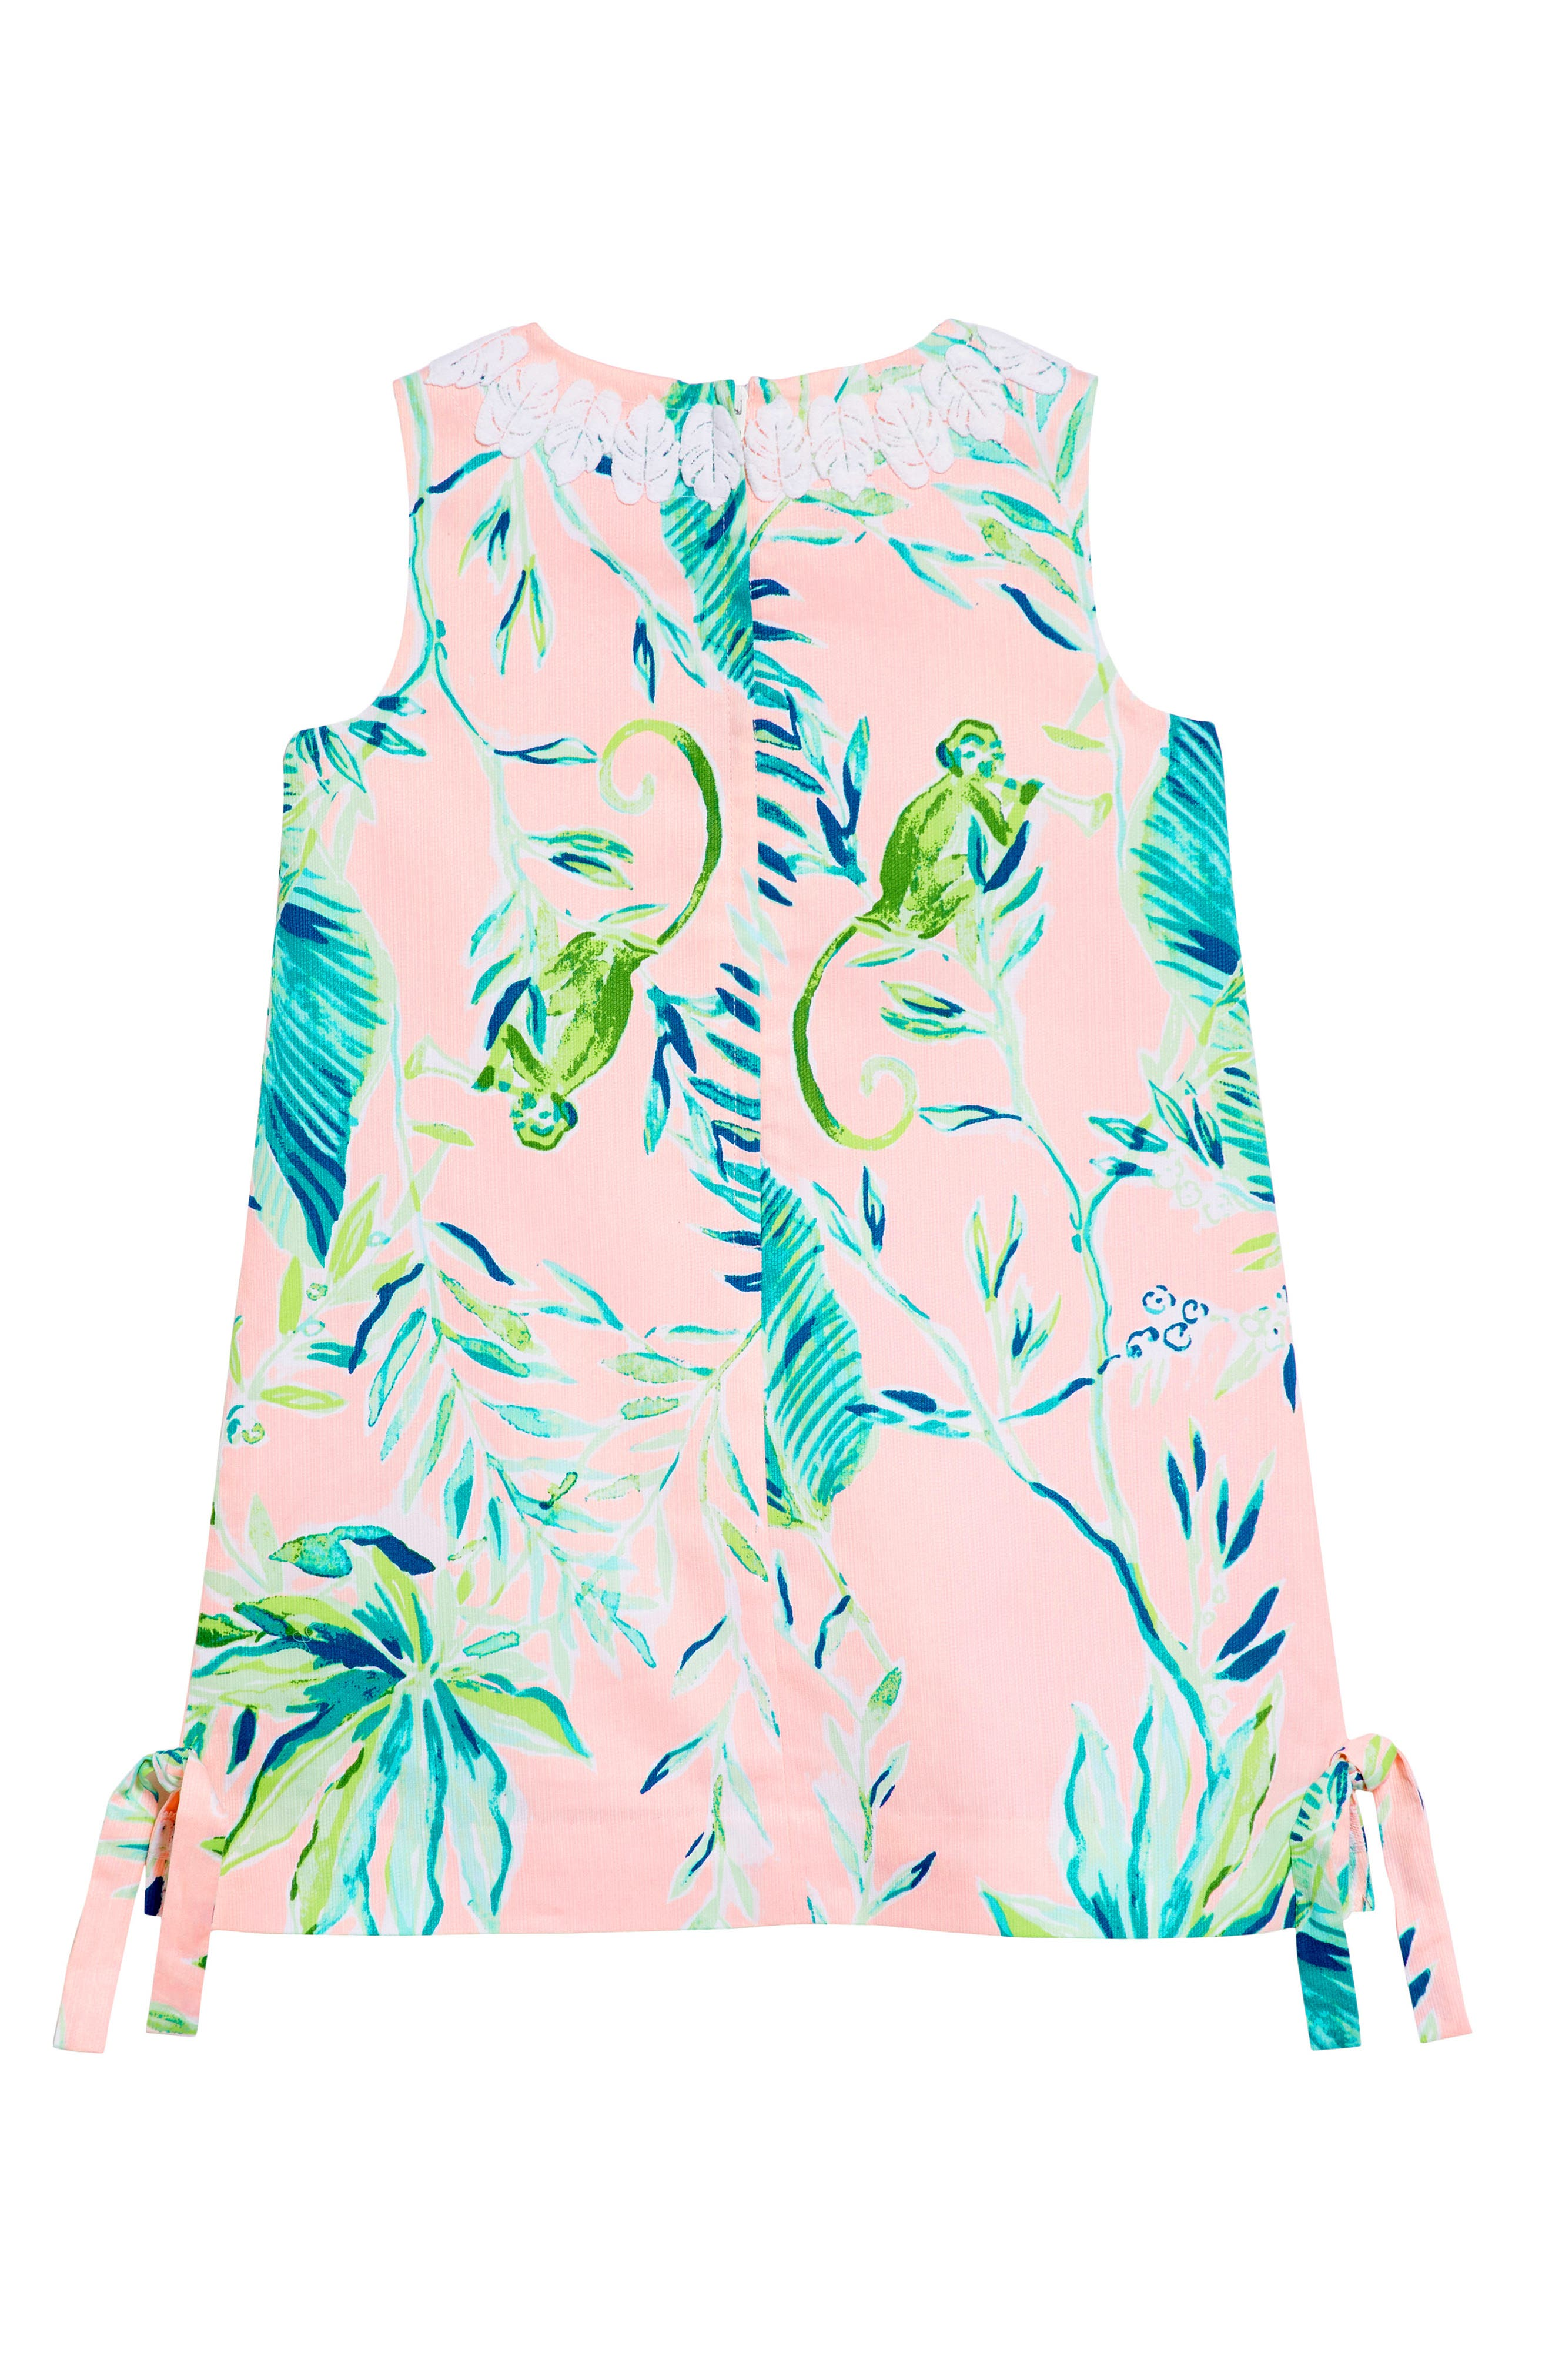 Little Lilly Classic Shift Dress,                             Alternate thumbnail 2, color,                             CORAL REEF TINT CHIMPOISERIE